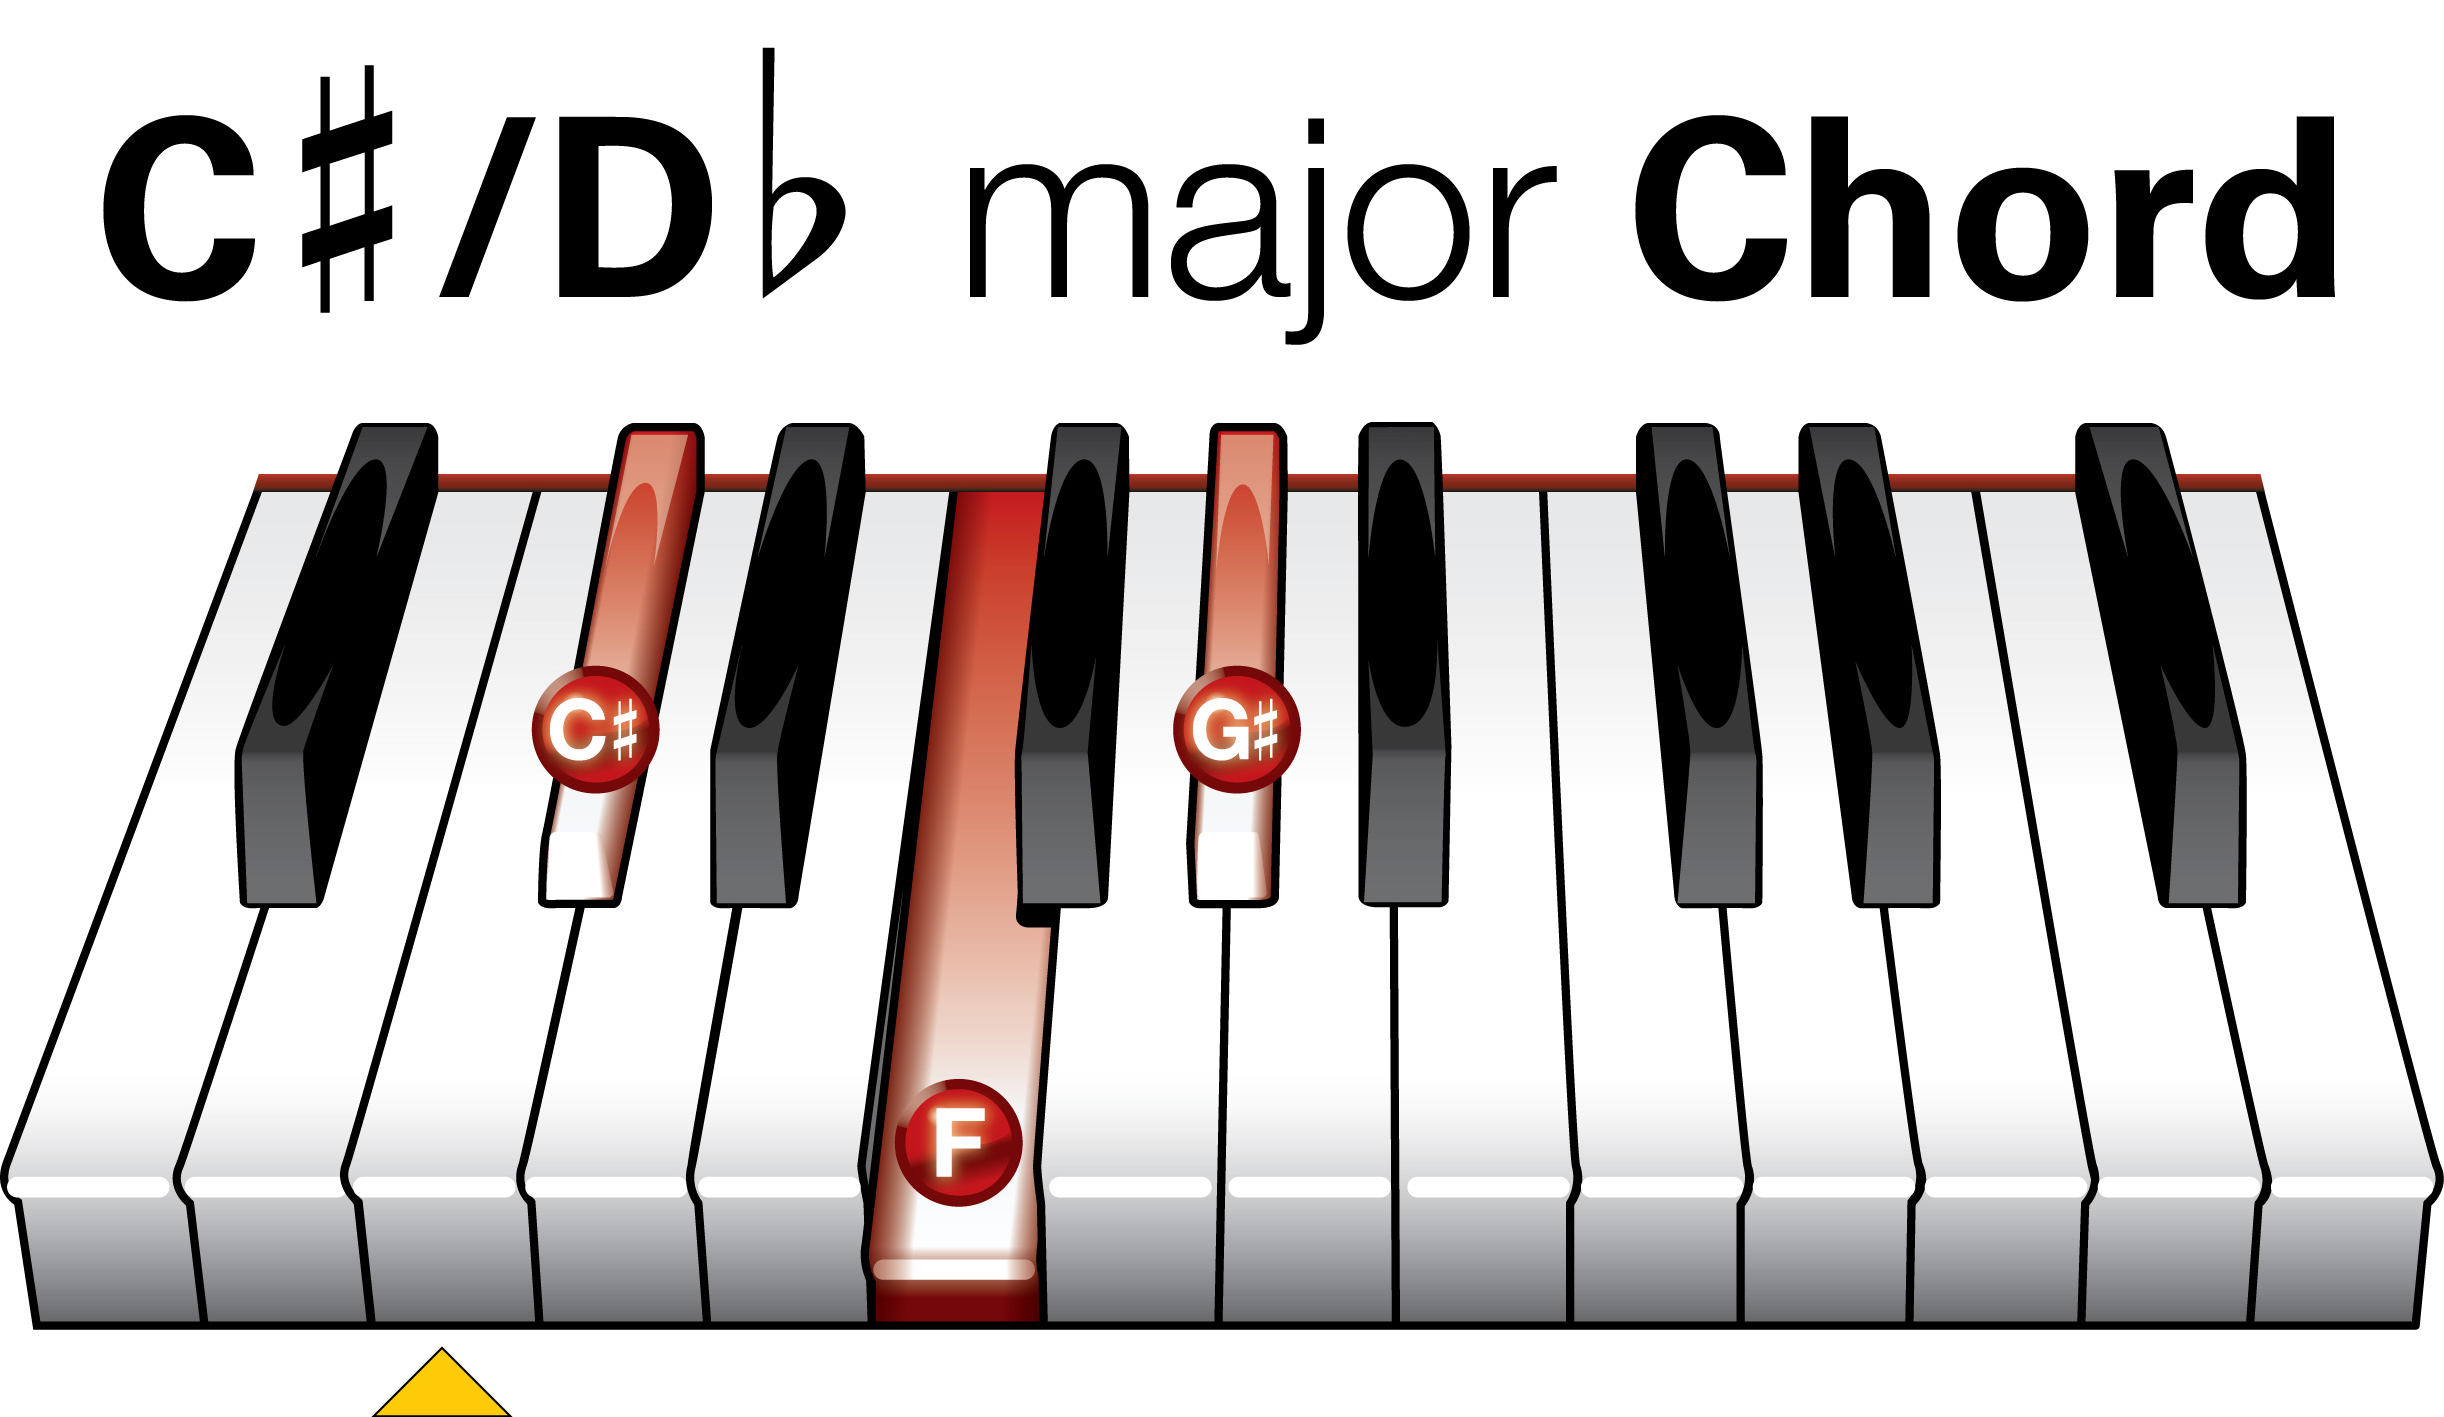 D Major Piano Chord : www.galleryhip.com - The Hippest Pics